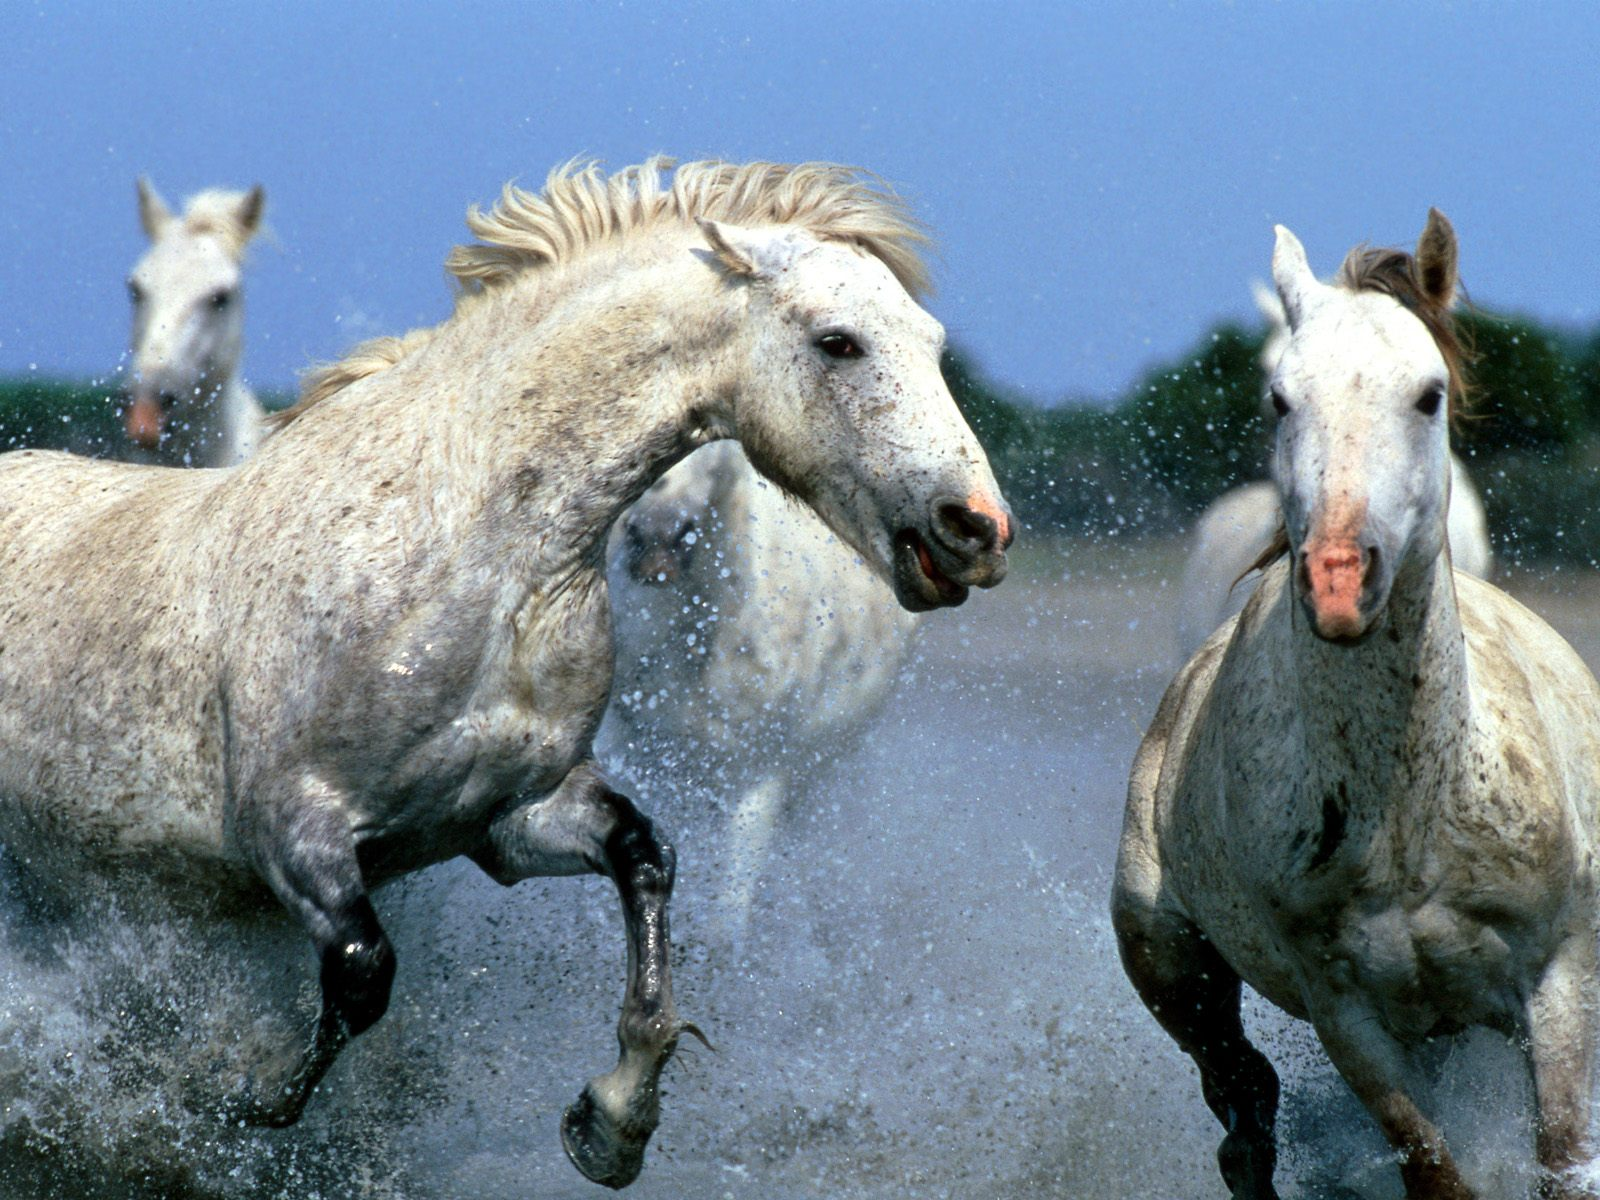 Horses Wallpapers for Desktop Backgrounds Wish you enjoy it 1600x1200